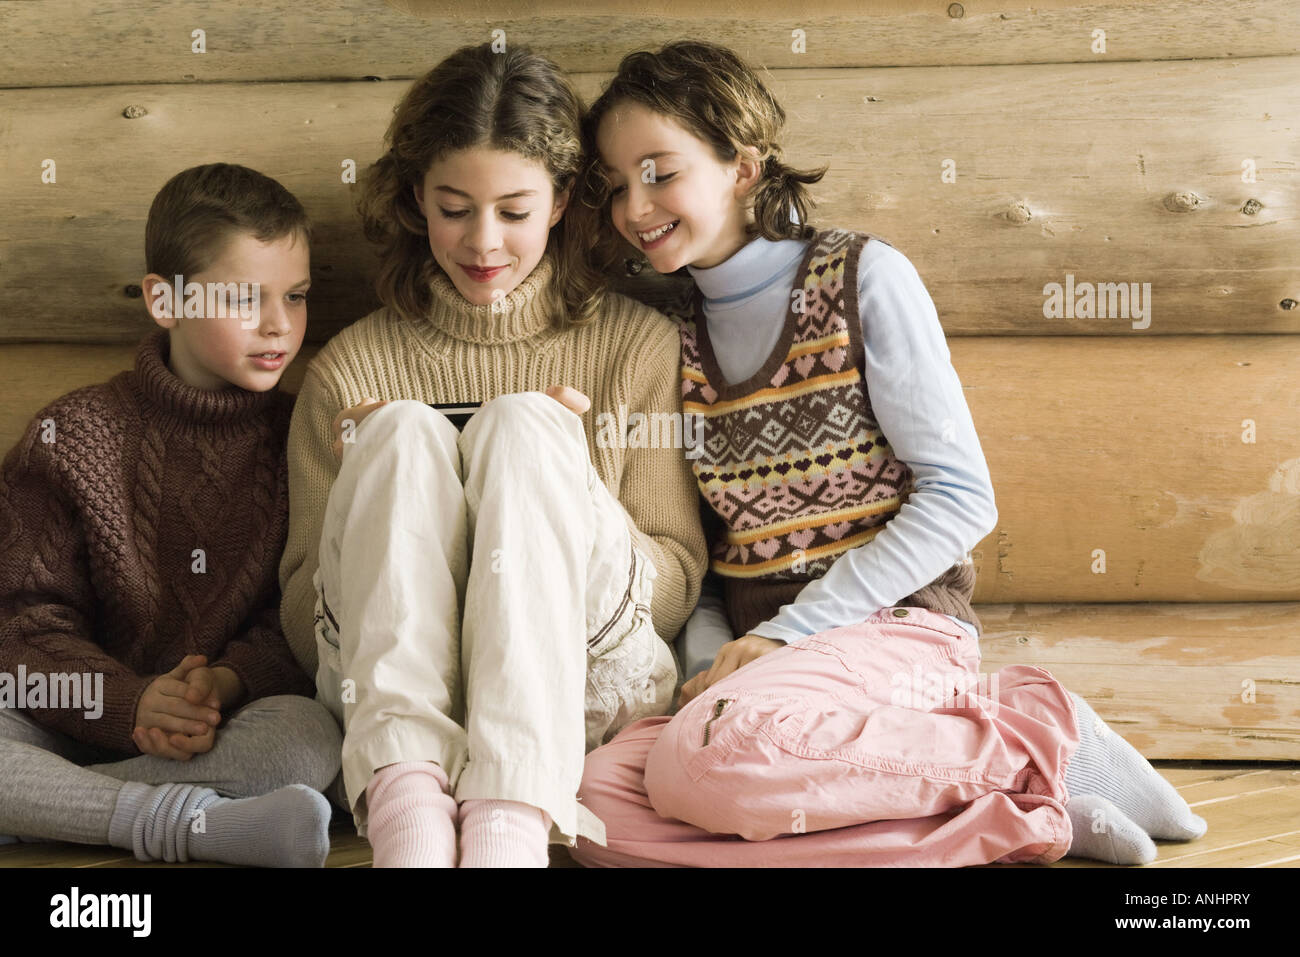 Boy and girl watching teen girl play video game Stock Photo